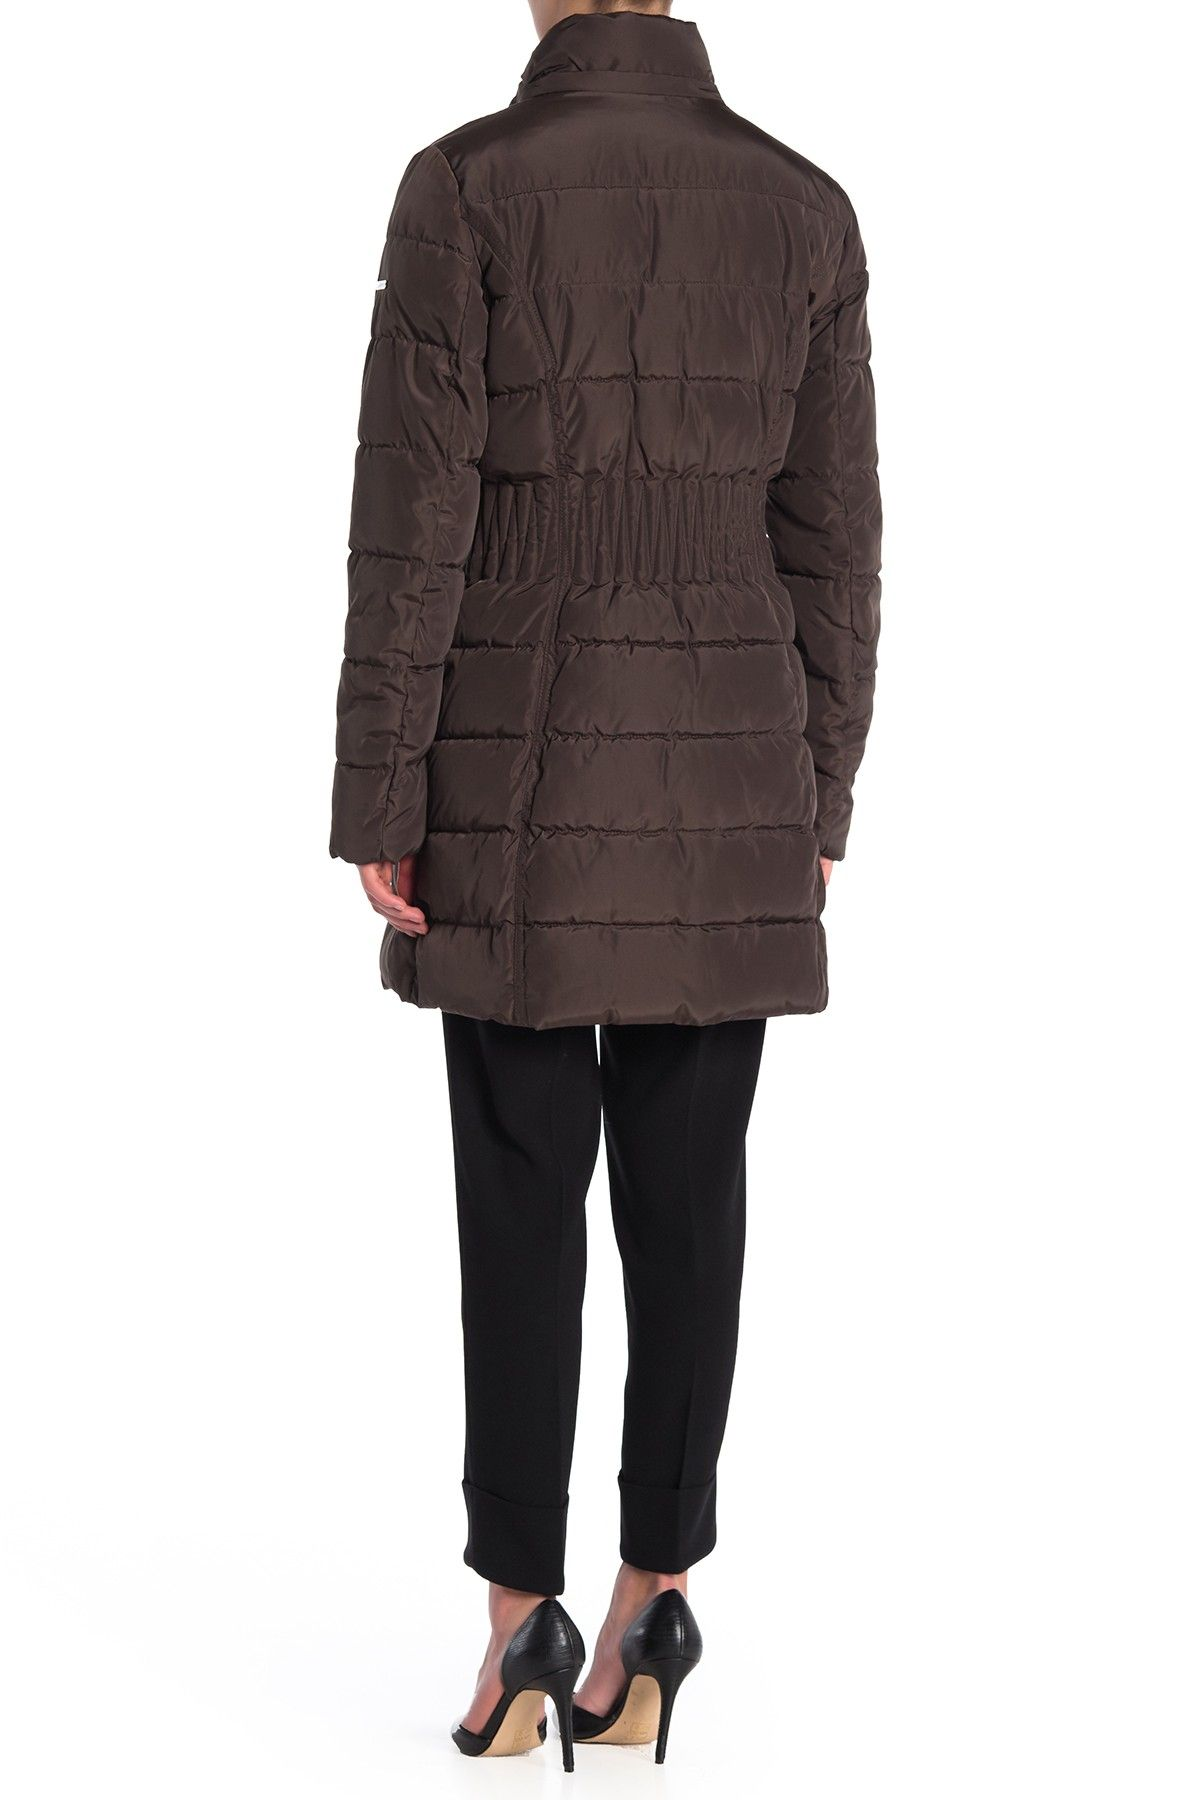 Laundry By Shelli Segal Faux Fur Trimmed Hooded Fitted Parka